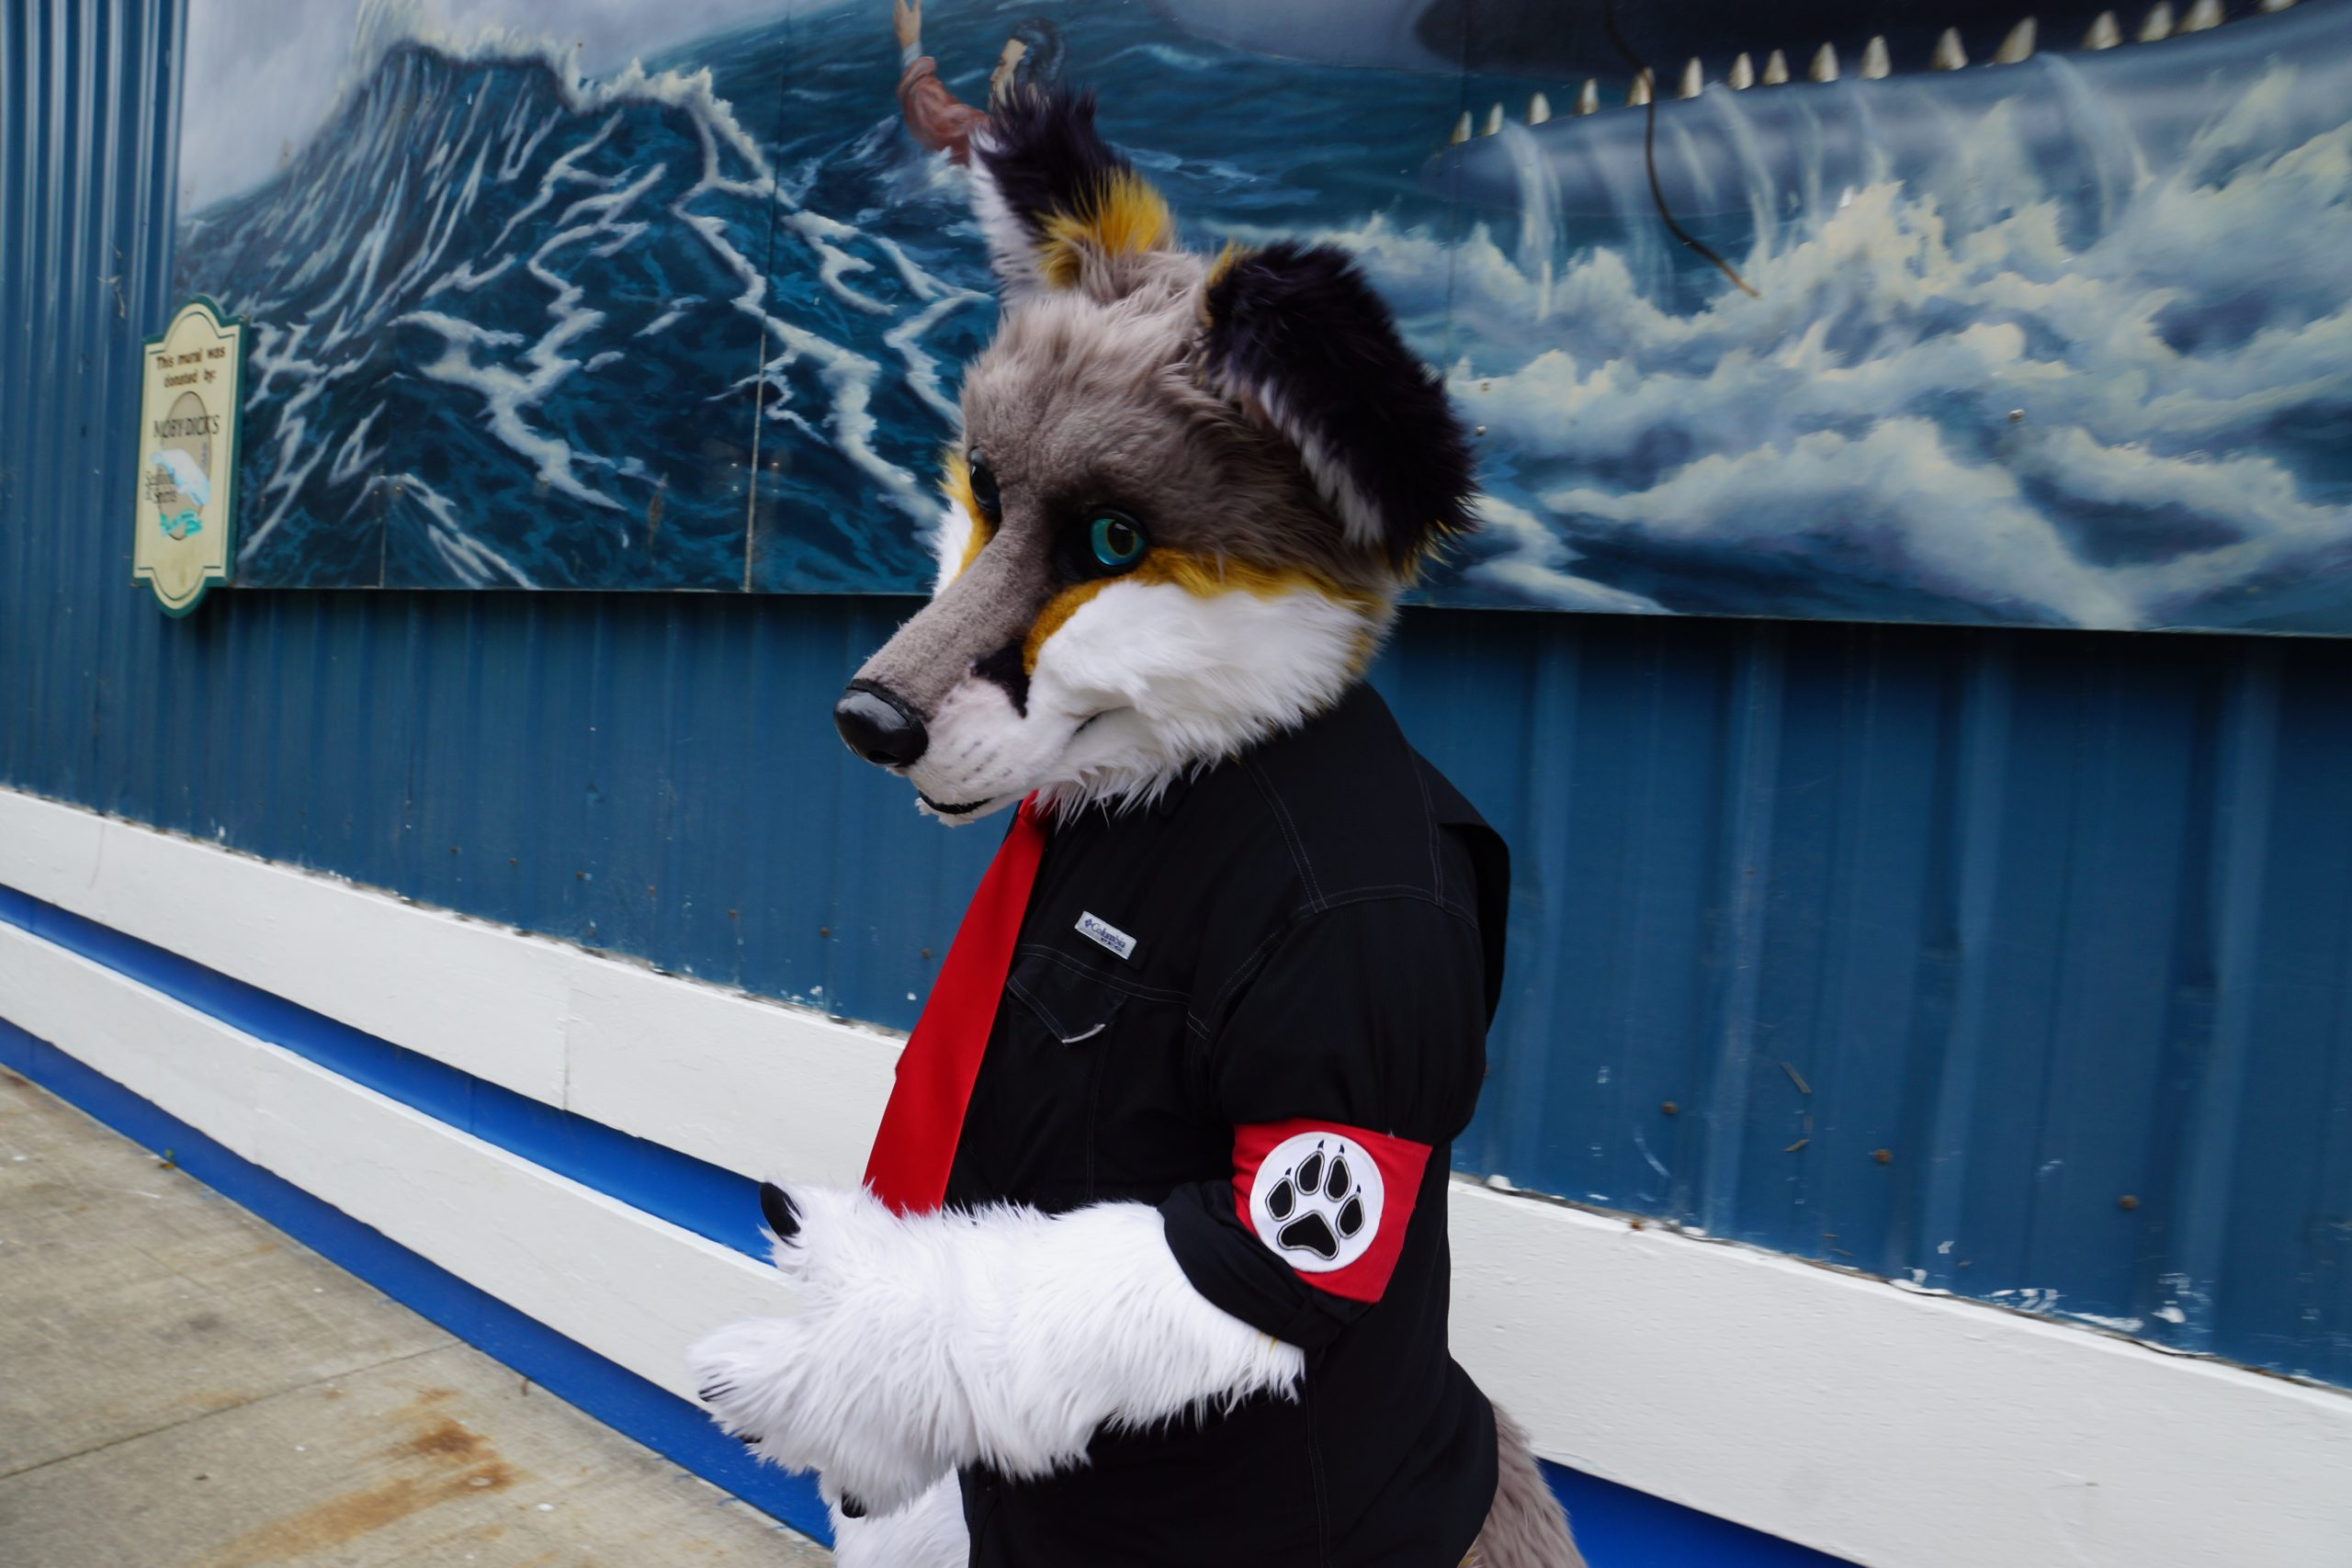 Furries in Fort Collins respond to alt-right allegations